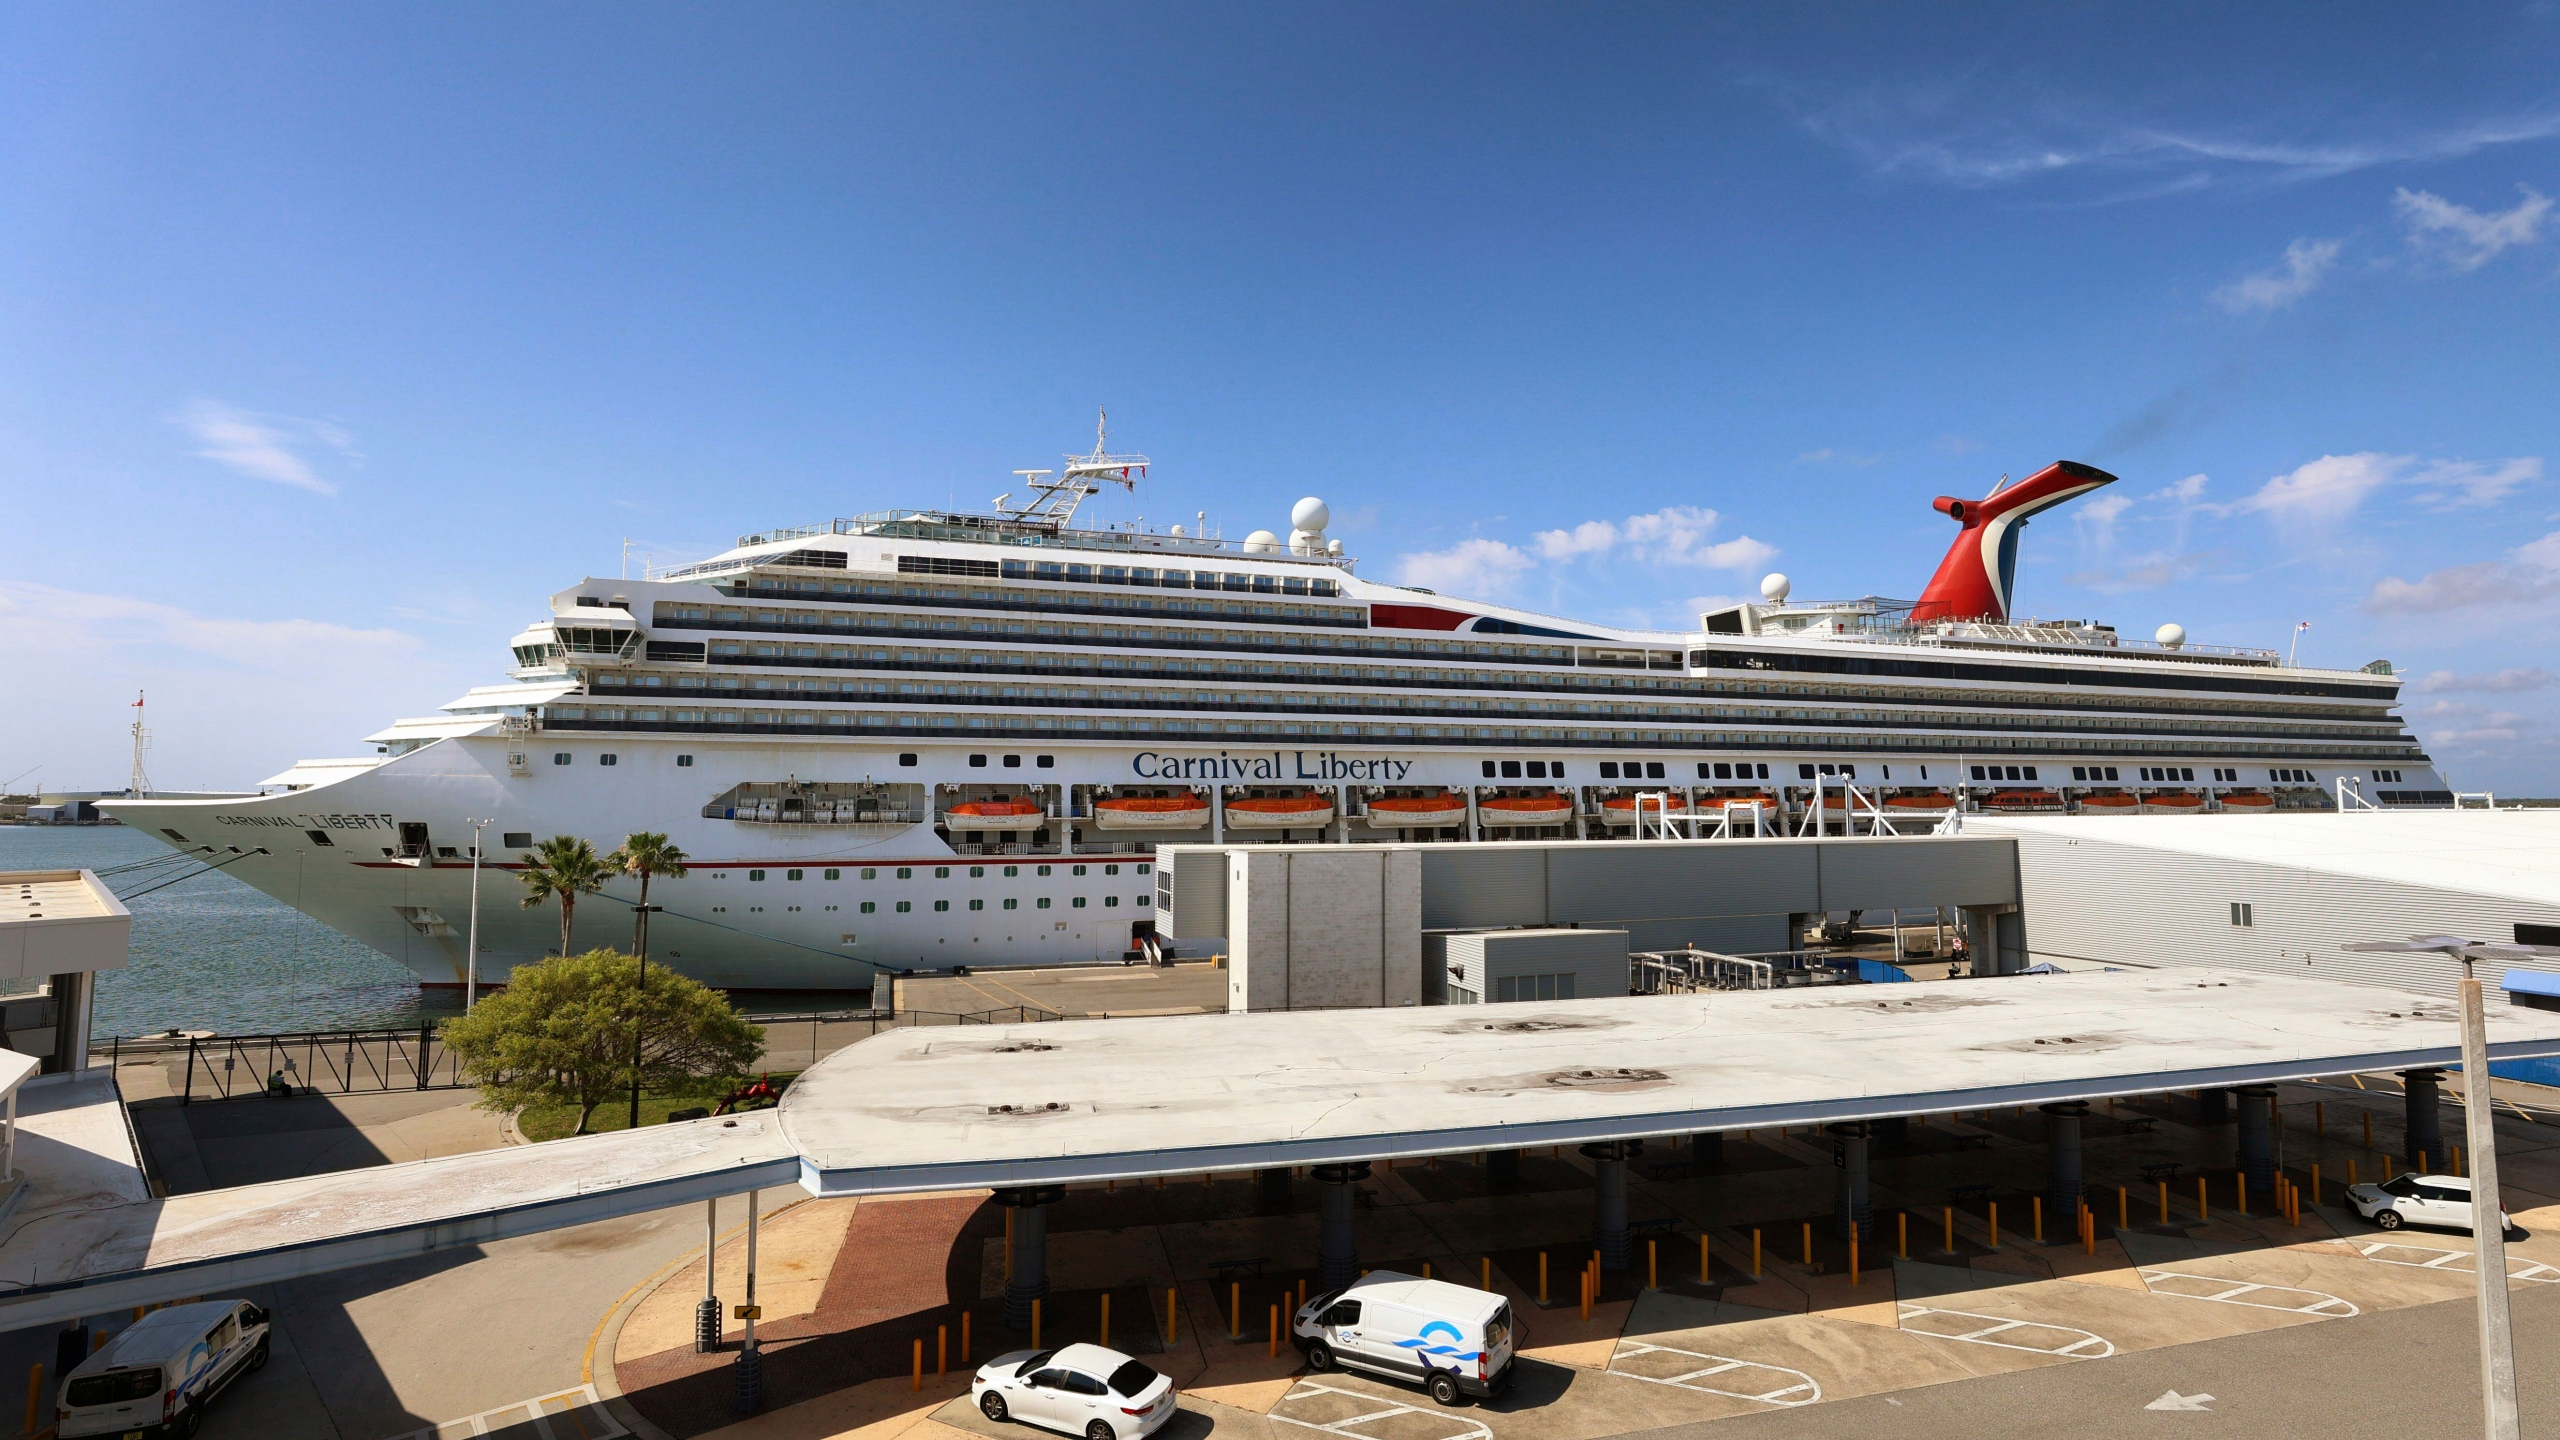 """FILE - In this Wednesday, May 12, 2021, file photo, the Carnival Cruise ship """"Liberty"""" is docked at Port Canaveral, Fla., as crew members get vaccinated for COVID-19. Customers and employees of several Carnival Corp. cruise lines might have had personal information stolen. The Miami-based company said Thursday, June 17, that a data breach in March might have exposed things like Social Security numbers and dates of birth for some customers, employees and ship crew members on Carnival Cruise Line, Holland America Line and Princess Cruises. (Joe Burbank/Orlando Sentinel via AP, File)"""